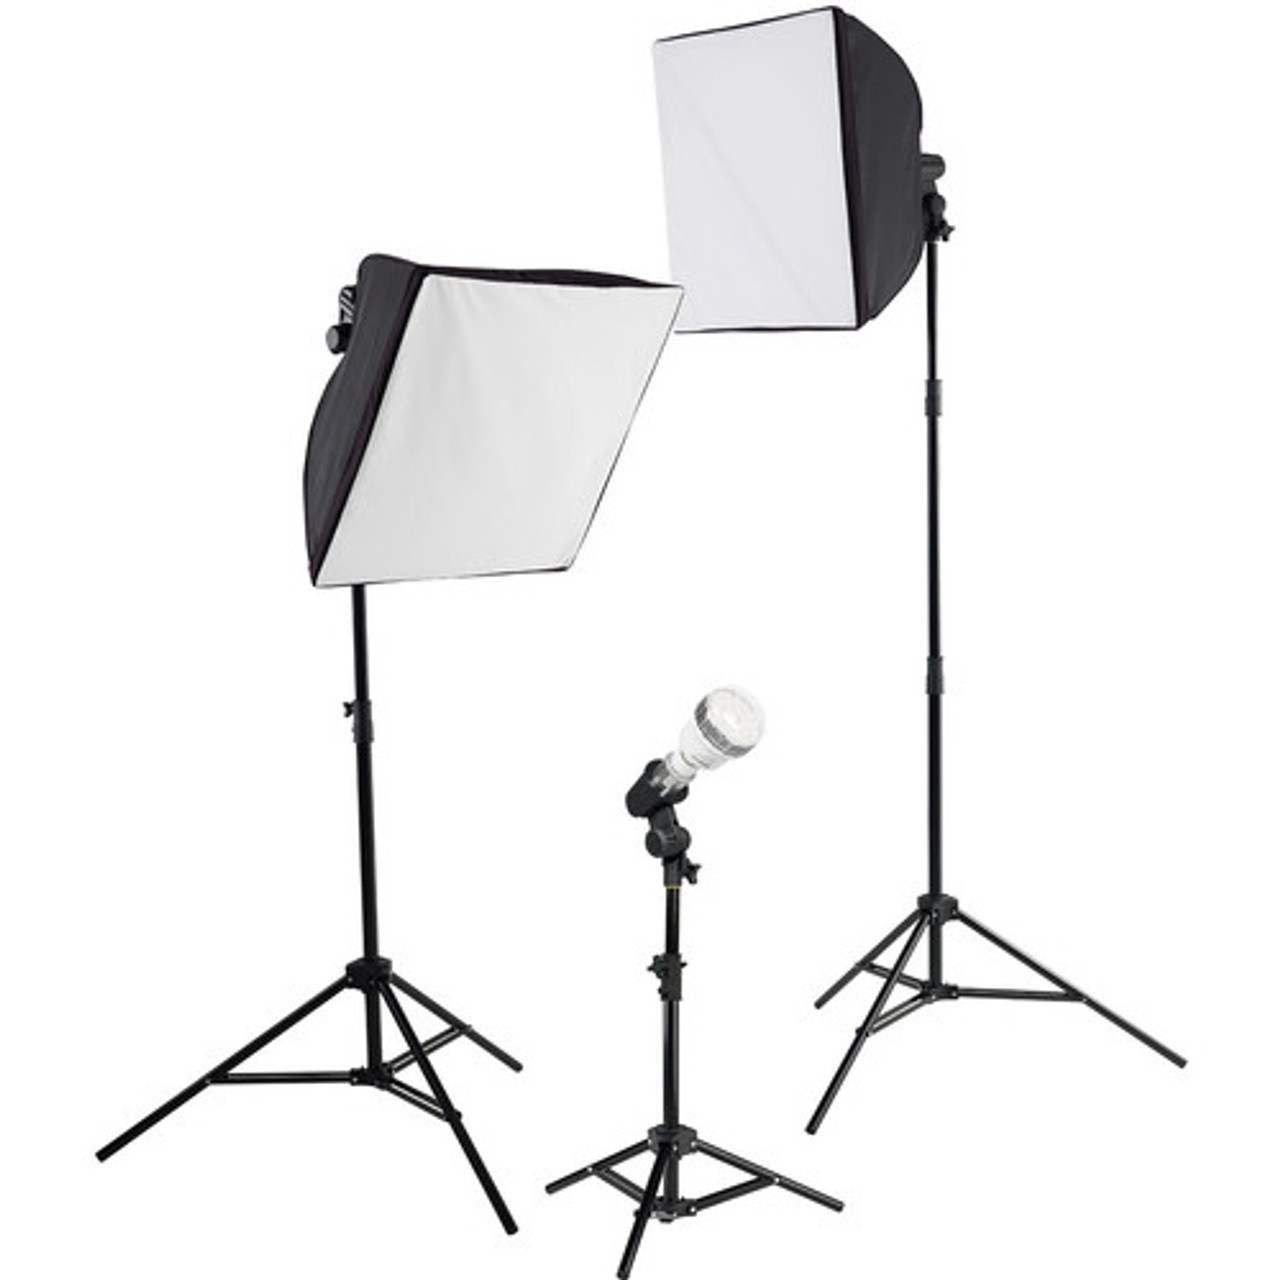 Westcott uLite LED 3-Light Collapsible Softbox Kit with 2.4 GHz Remote, 45W